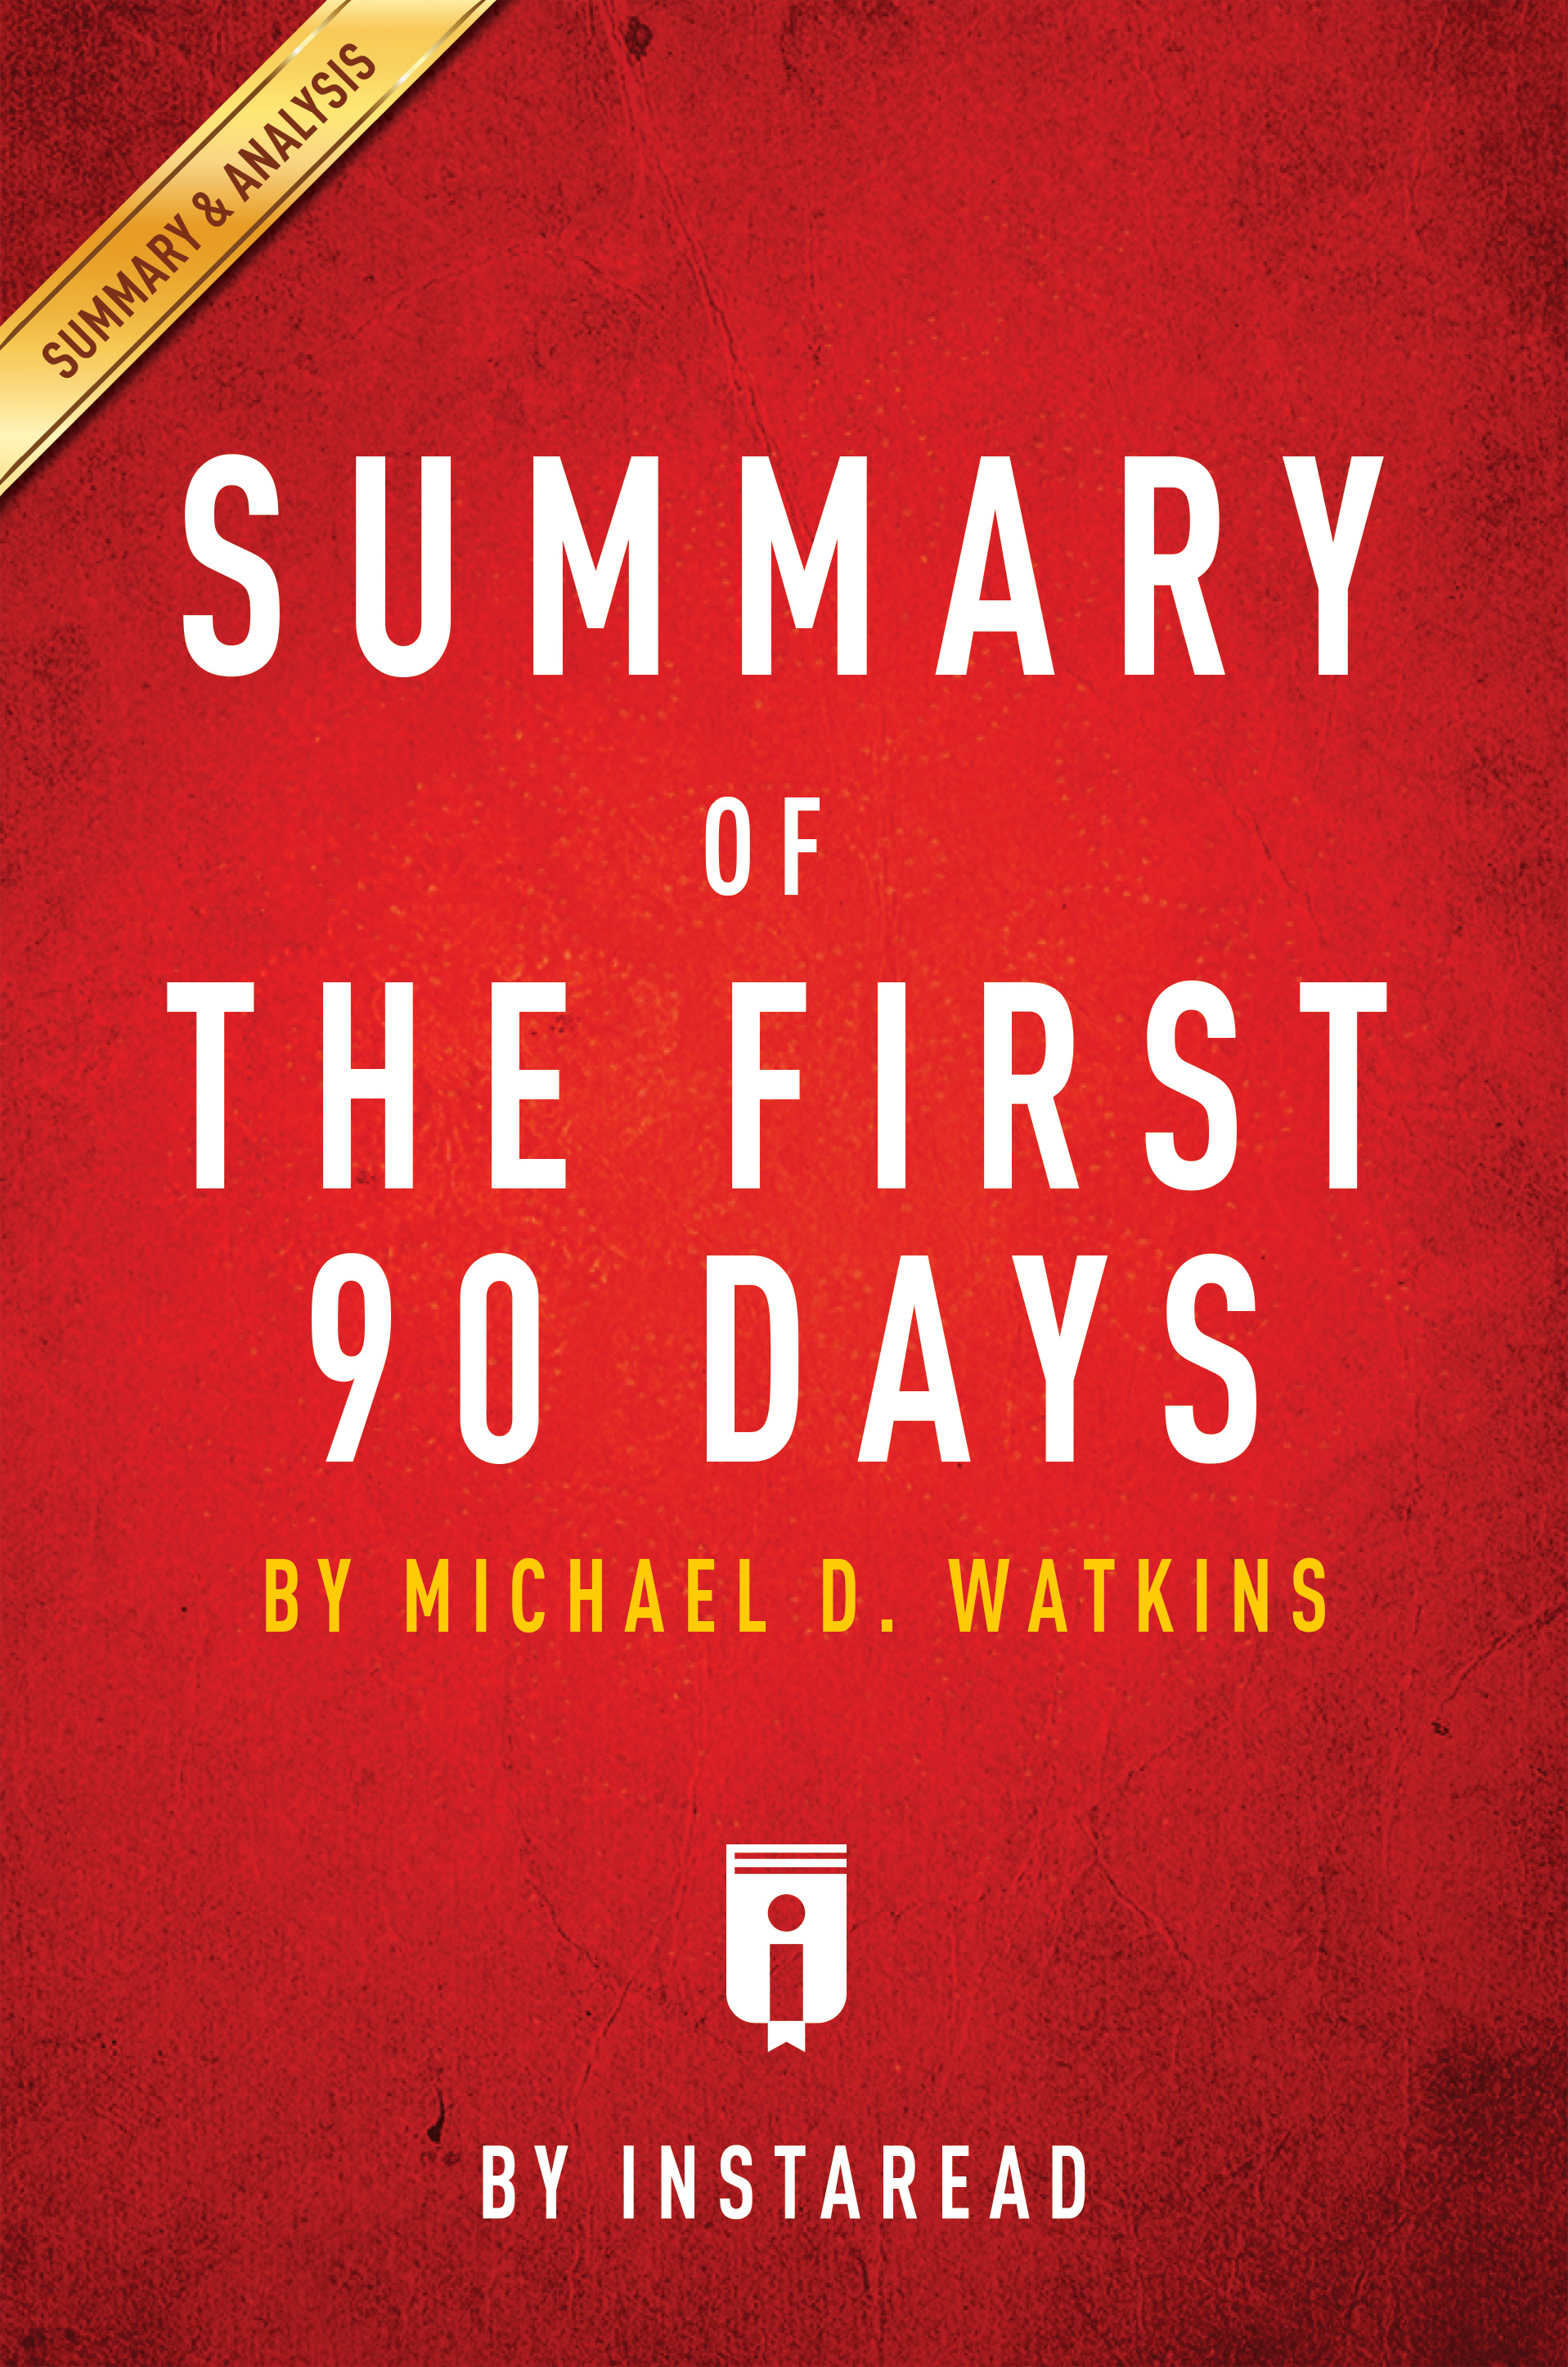 Download Ebook Summary of The First 90 Days by . Instaread Pdf